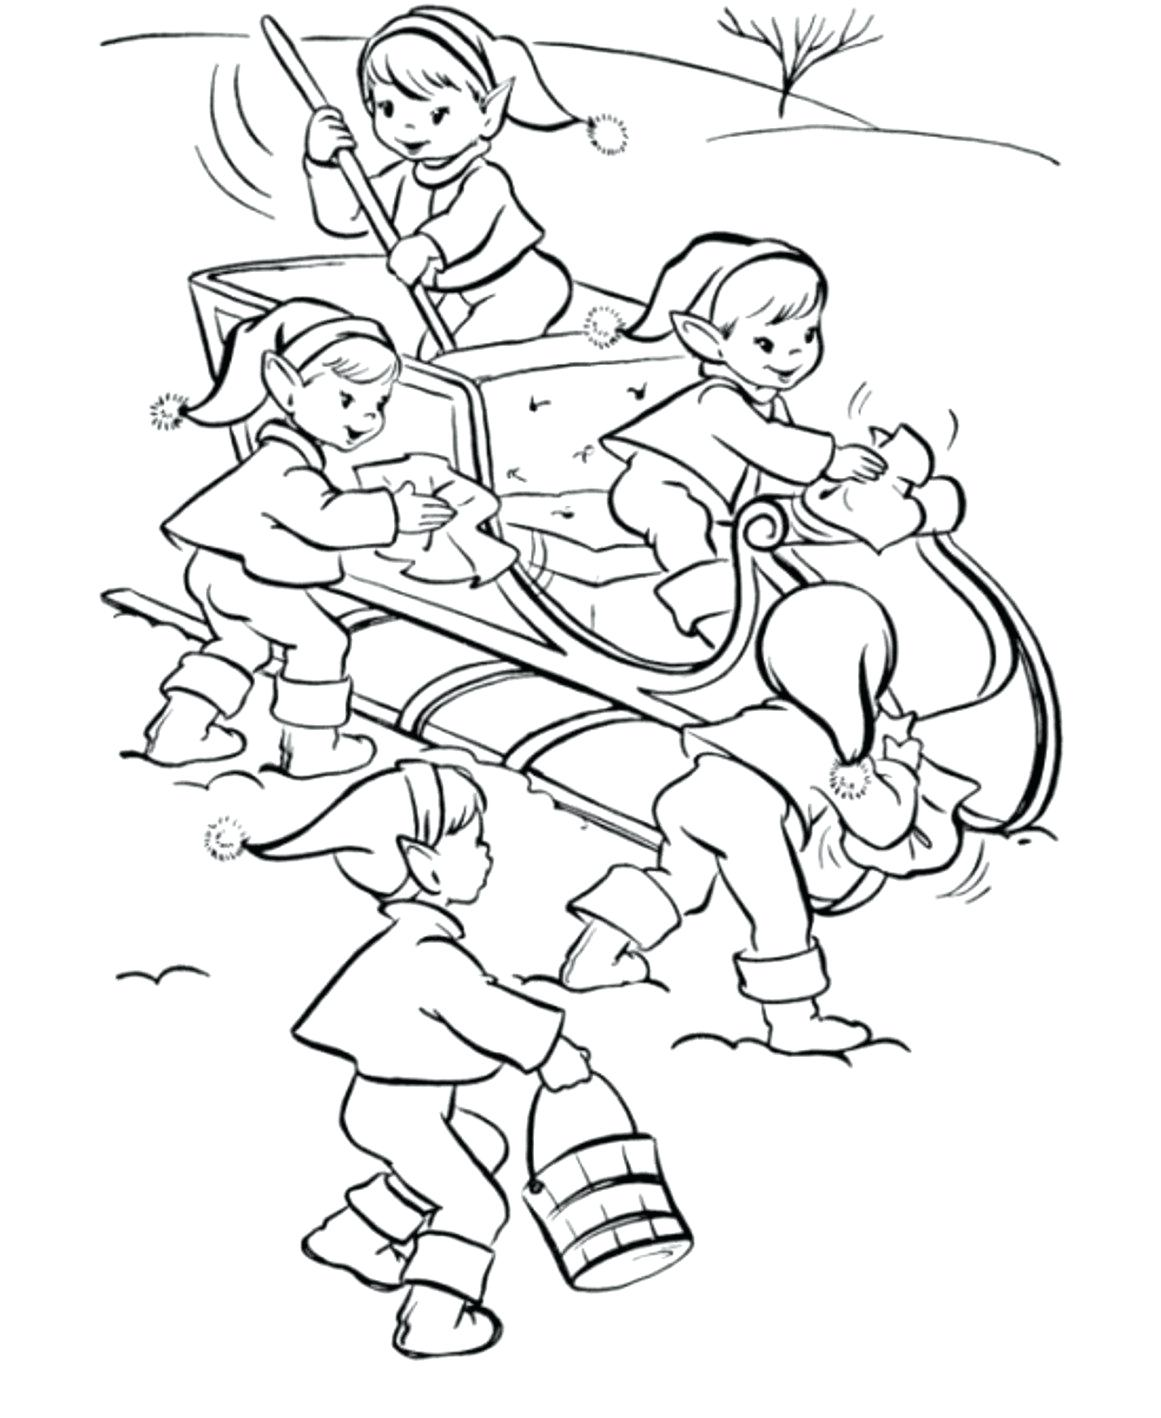 Christmas Coloring Elf Pages With Cute Elves